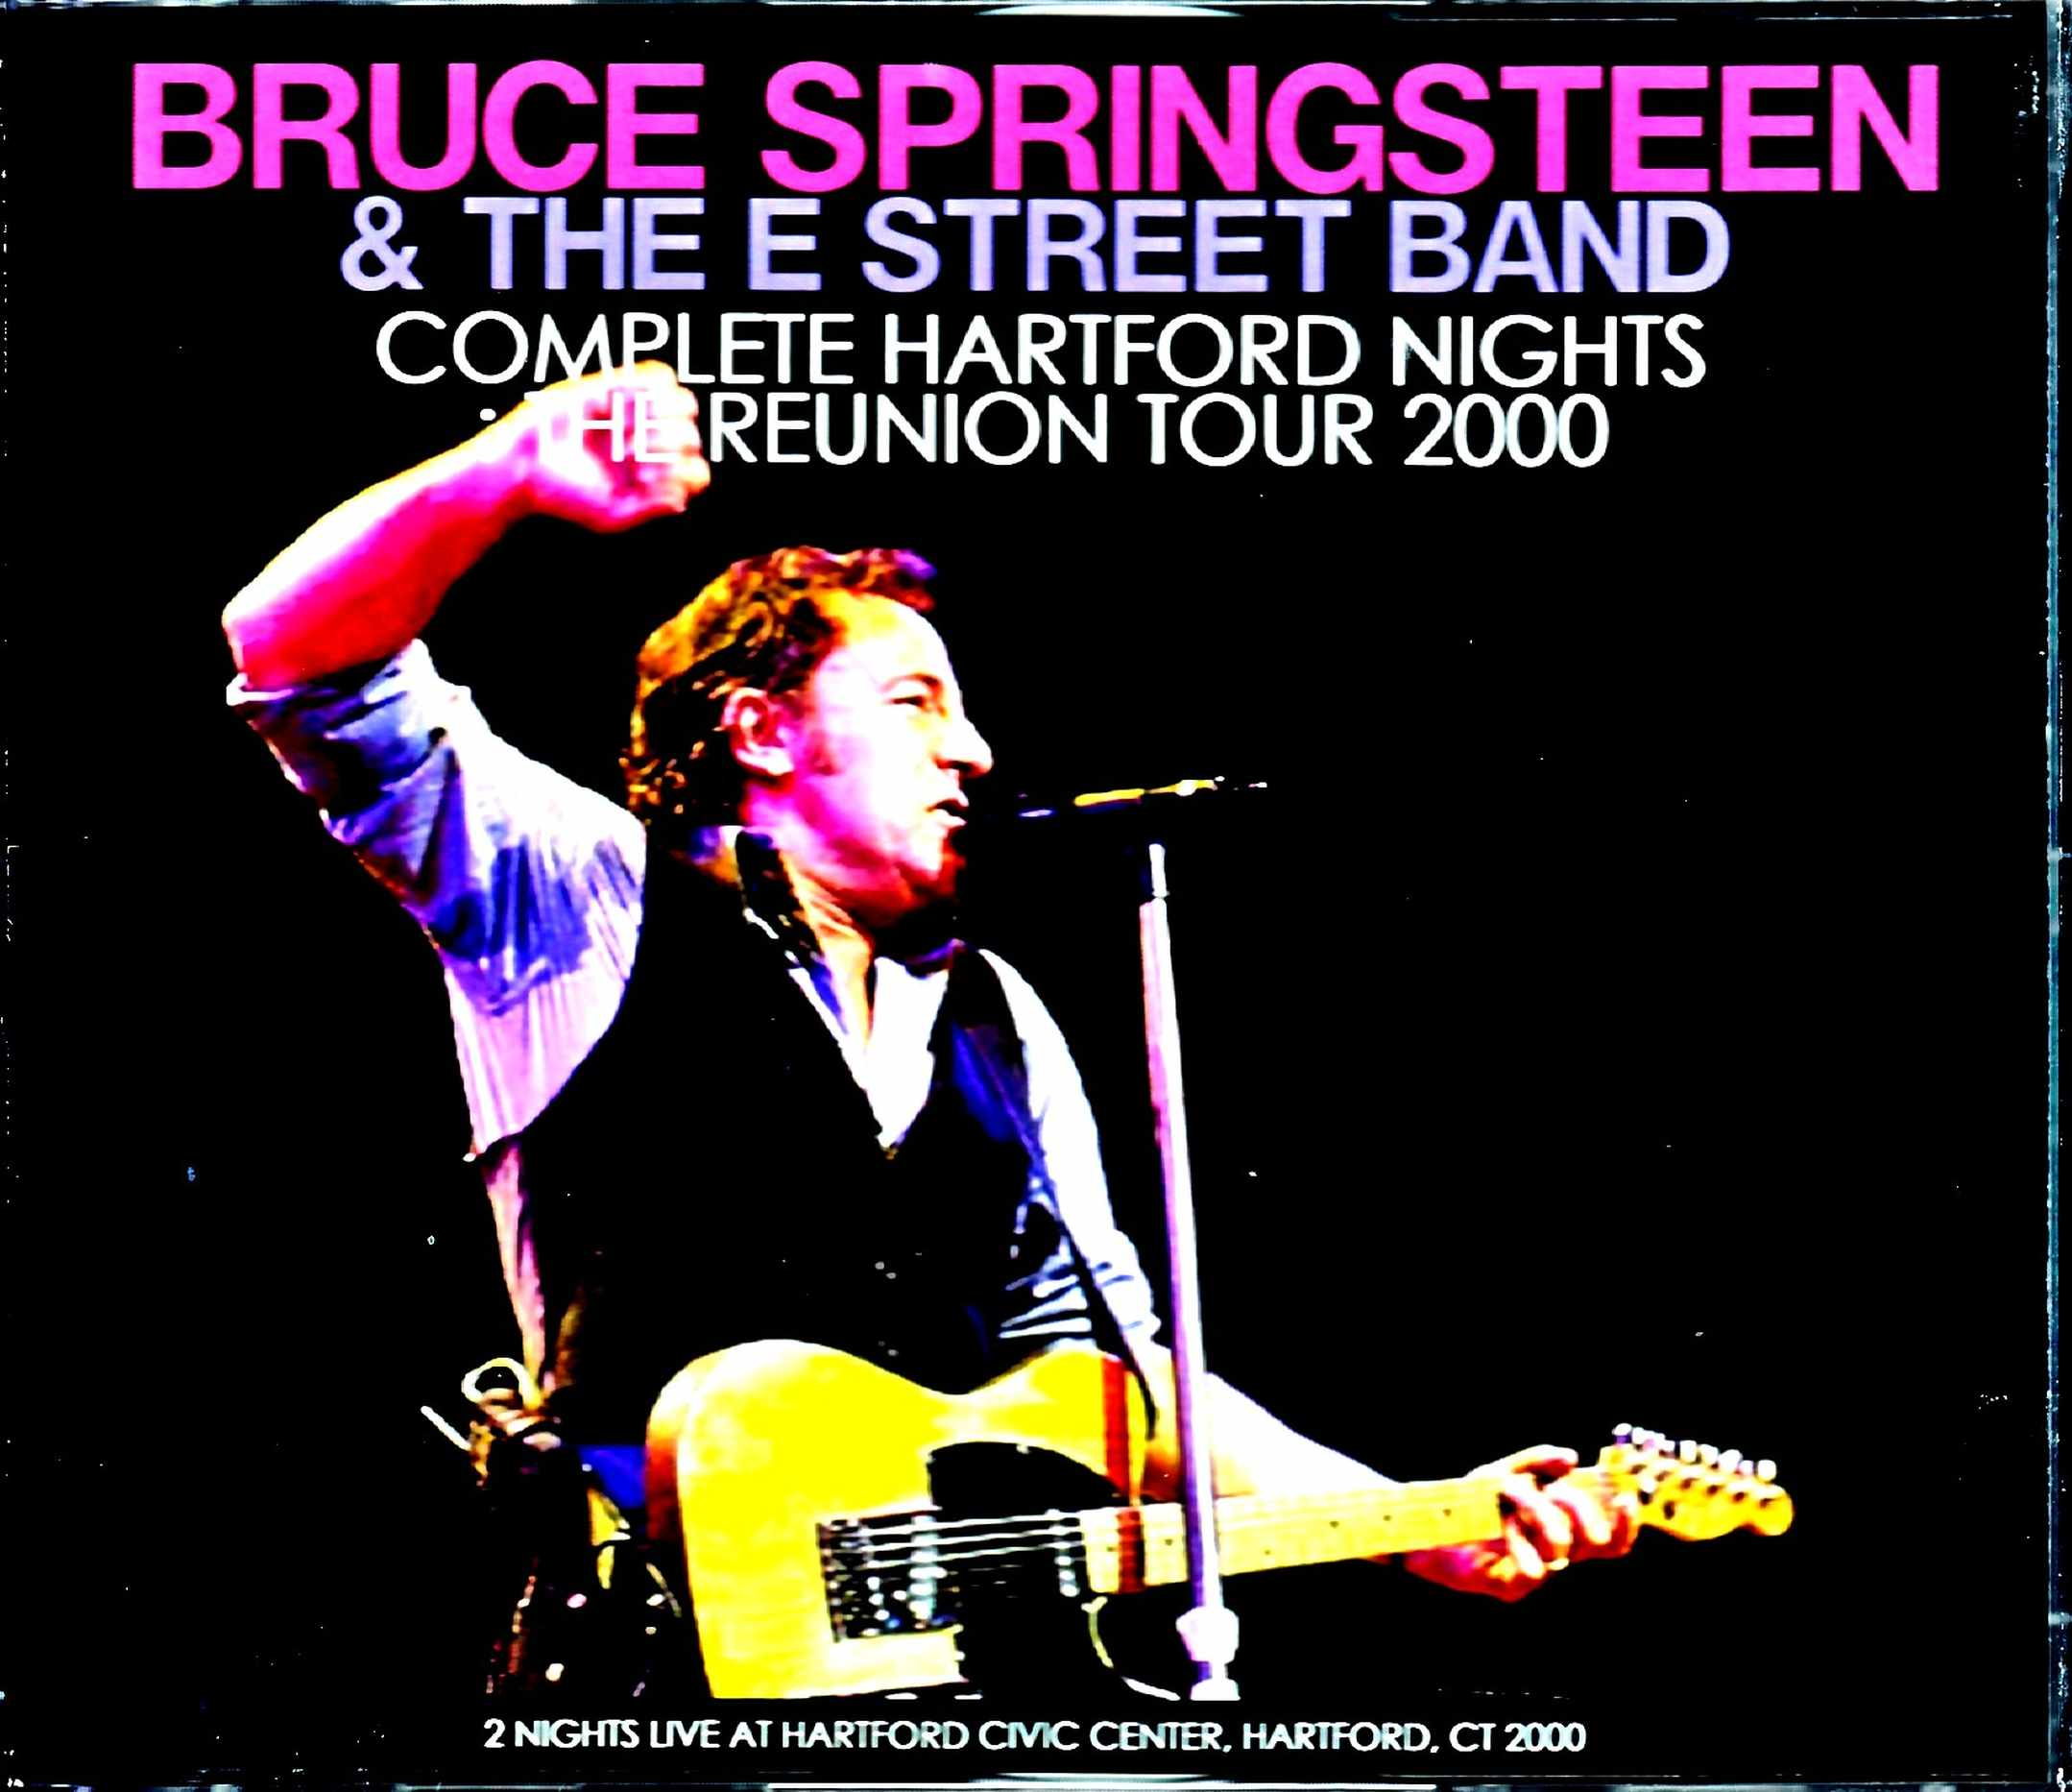 Bruce Springsteen & the E Street Band ブルース・スプリングスティーン/CT,USA 2000 2Days Complete